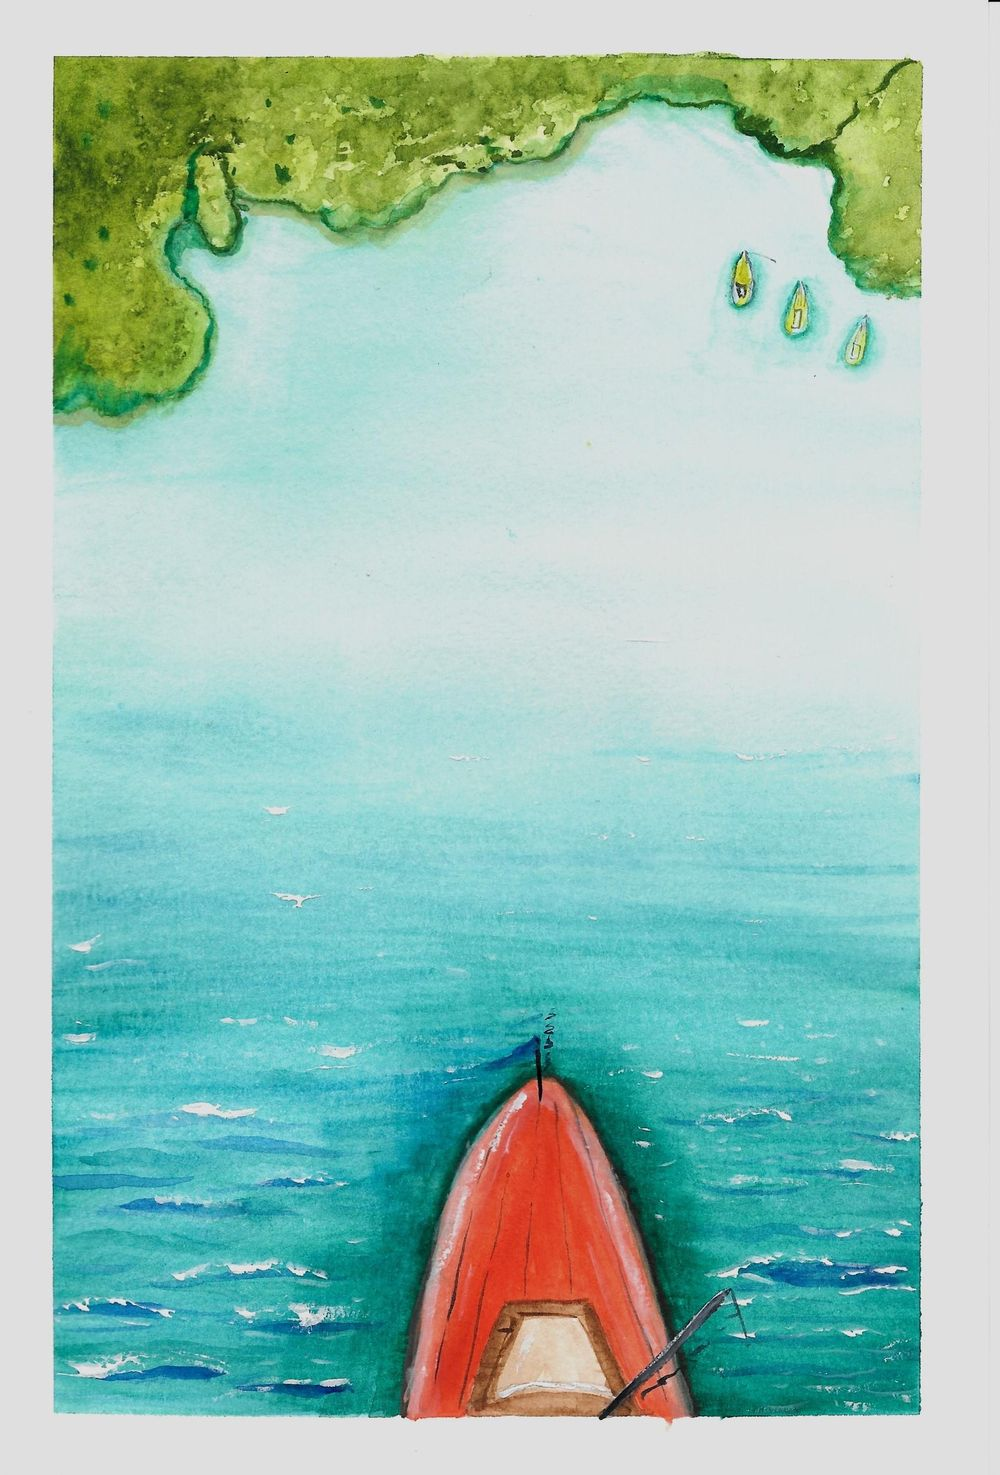 Watercolor Seascape & Boats - image 2 - student project